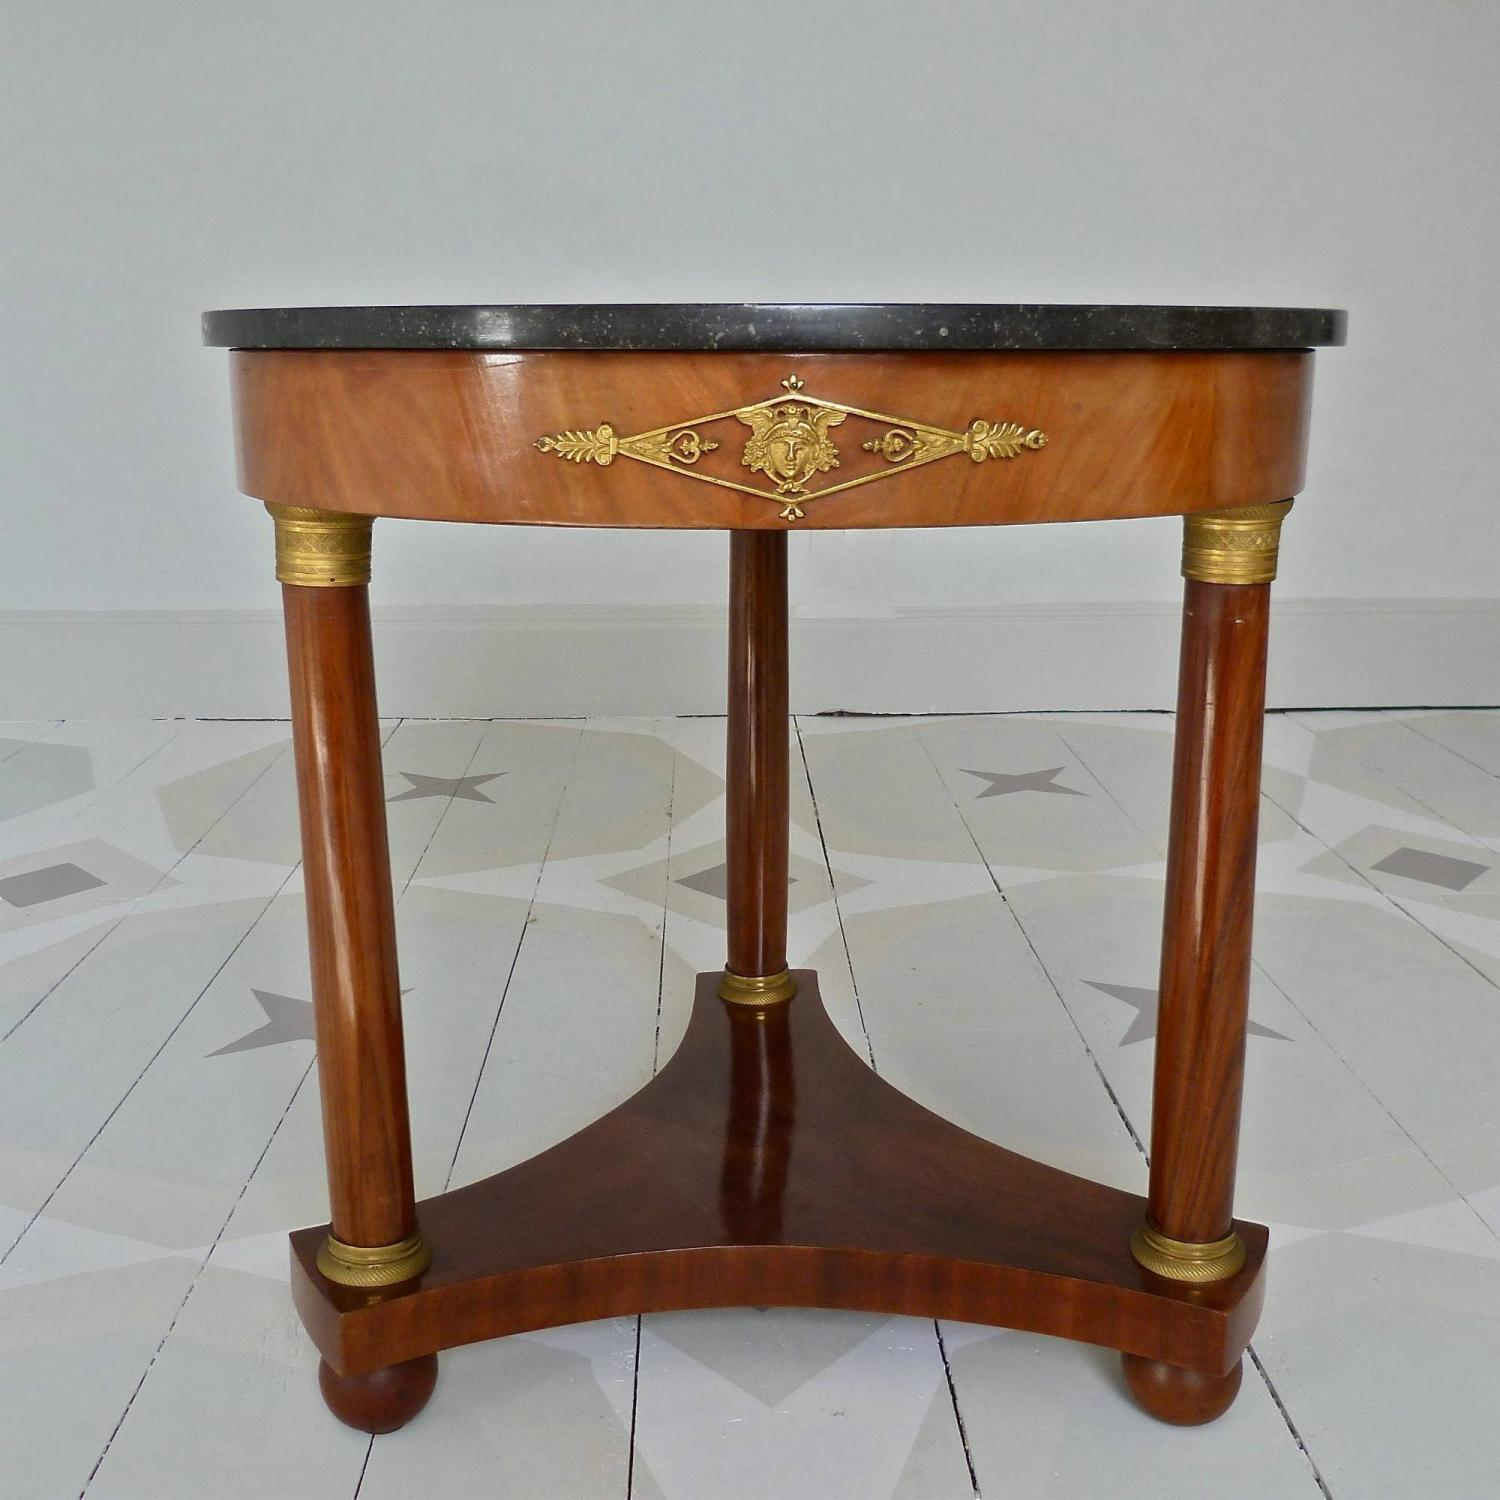 19TH CENTURY EMPIRE MAHOGANY GUERIDON